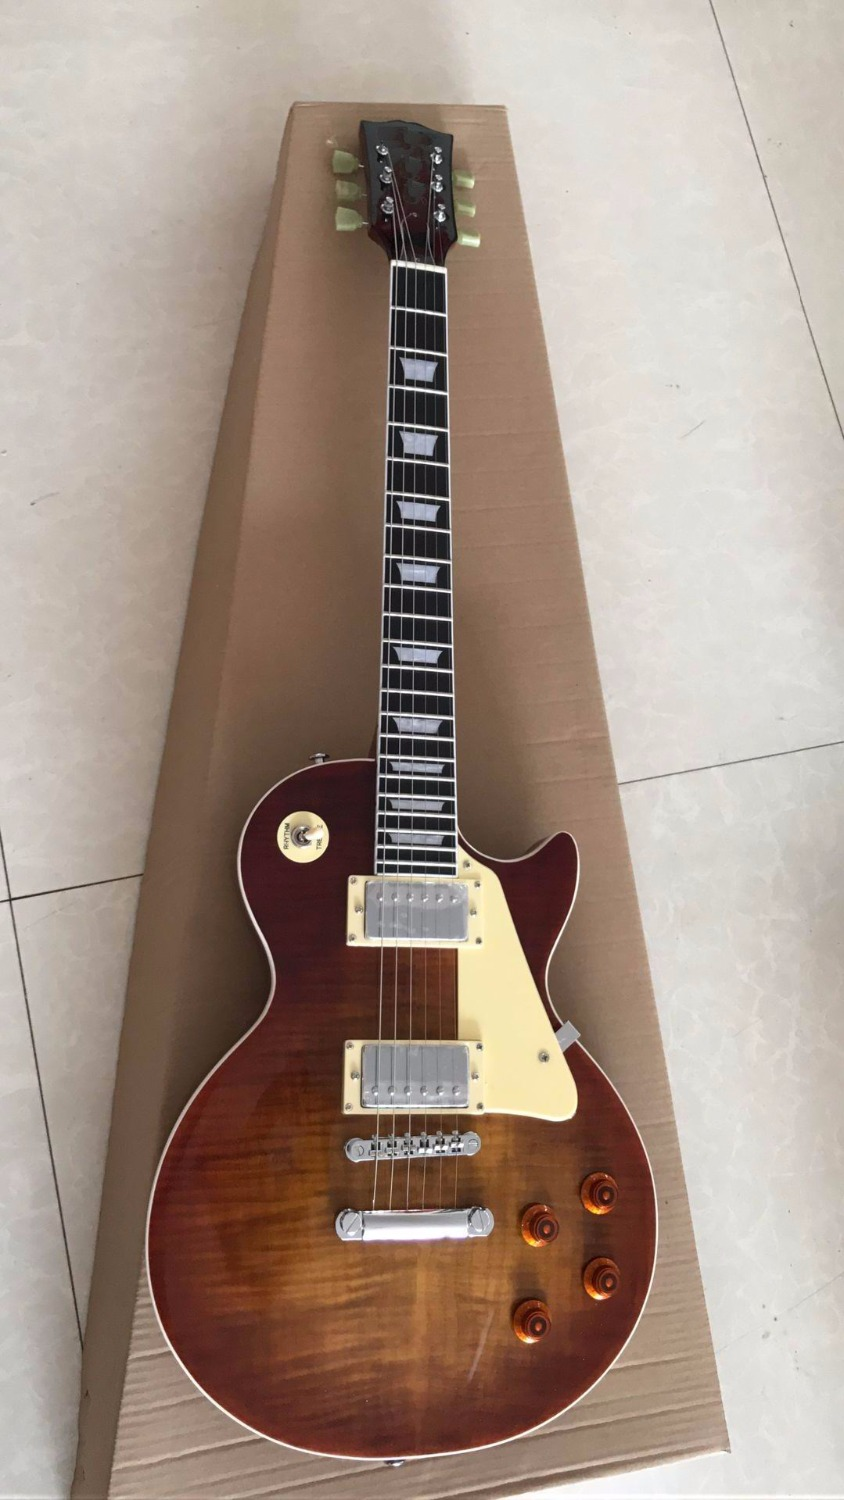 Wholesale Custom shop 50th Anniversary LP Reissue Aged Vintage Electric Guitar Ebony Cherry Sunburst tiger flame Top 170809